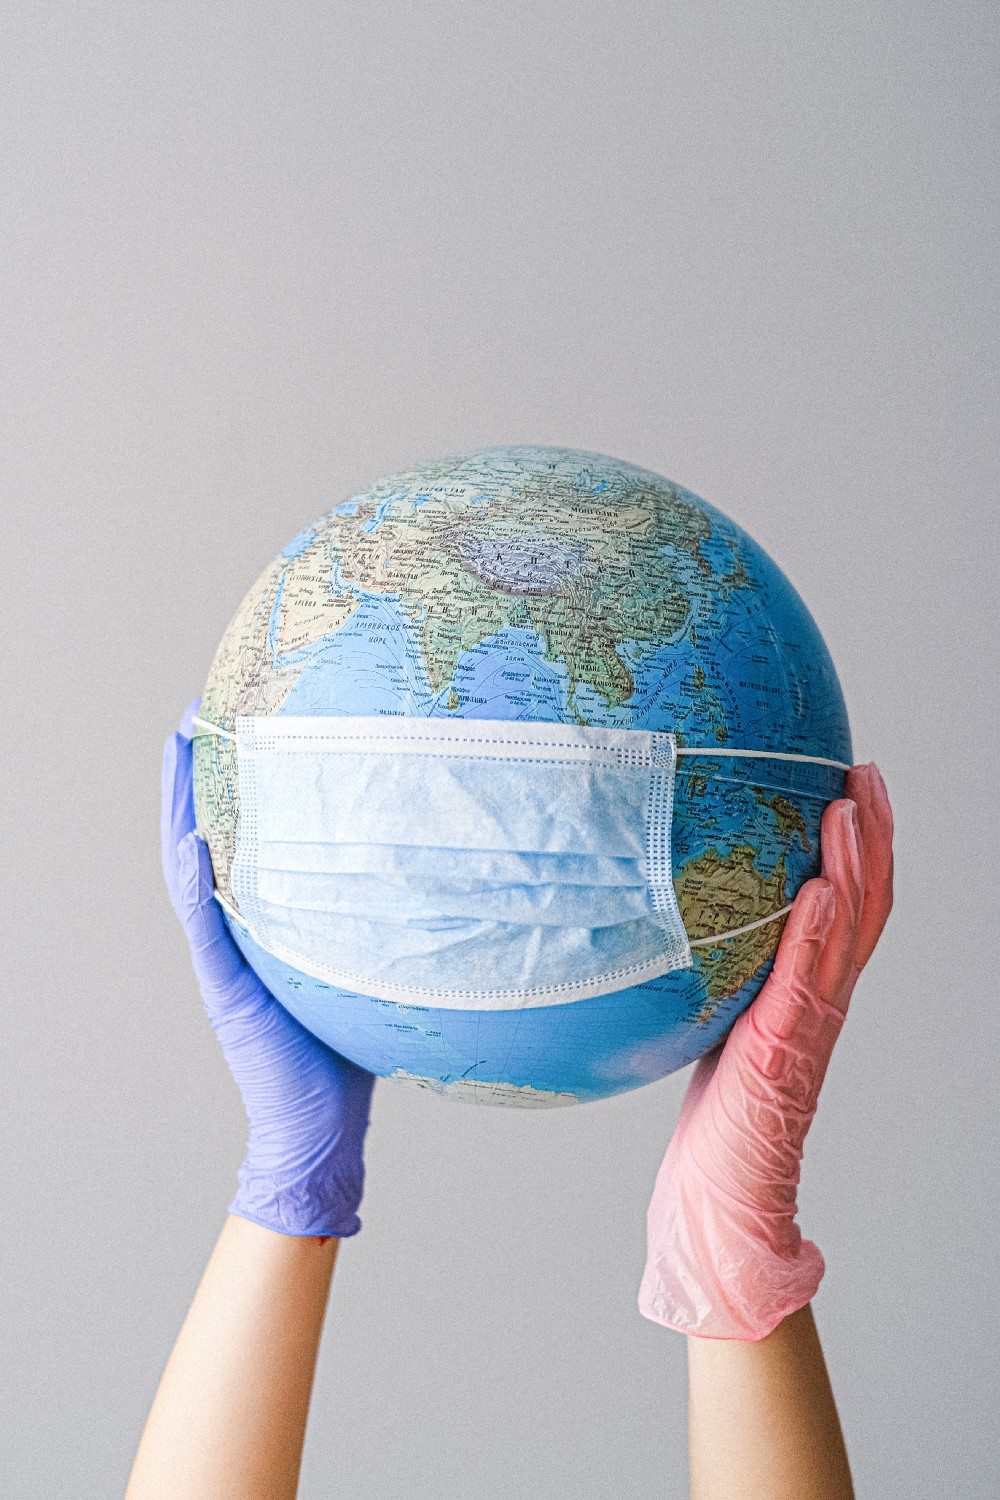 Photo by Anna Shvets from Pexels https://www.pexels.com/photo/hands-with-latex-gloves-holding-a-globe-with-a-face-mask-41675